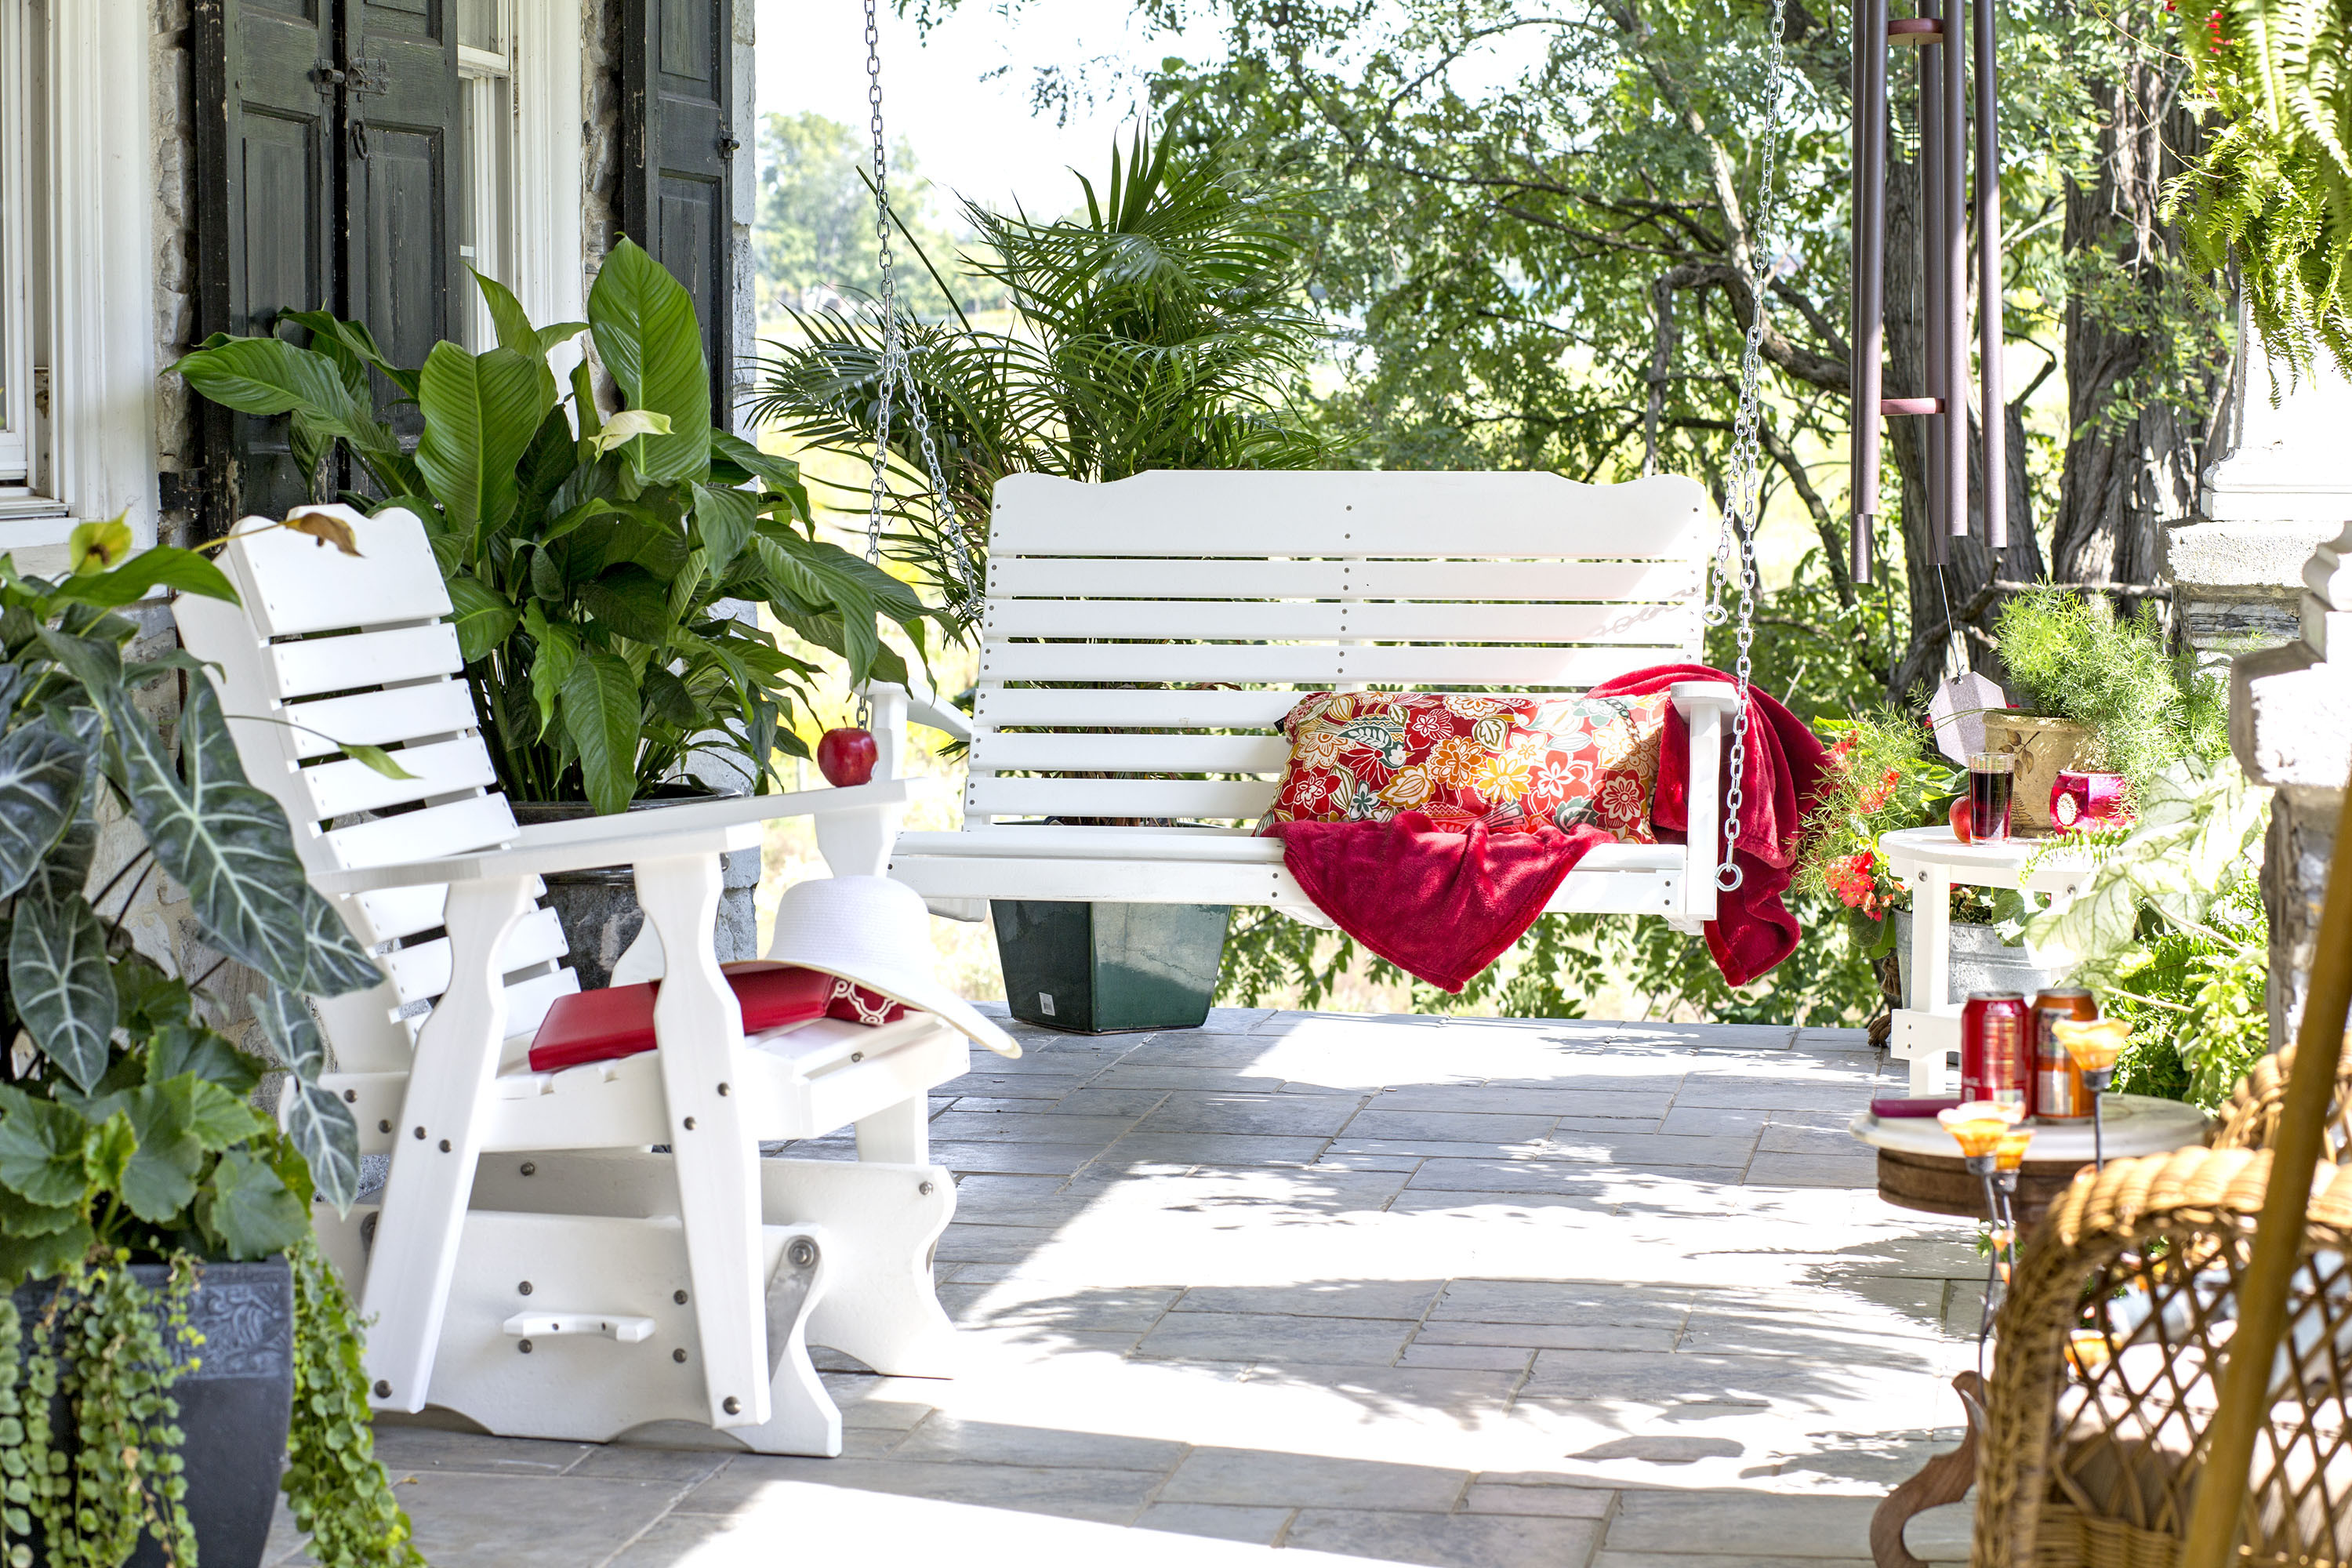 4' Curve Back Porch Swing - White